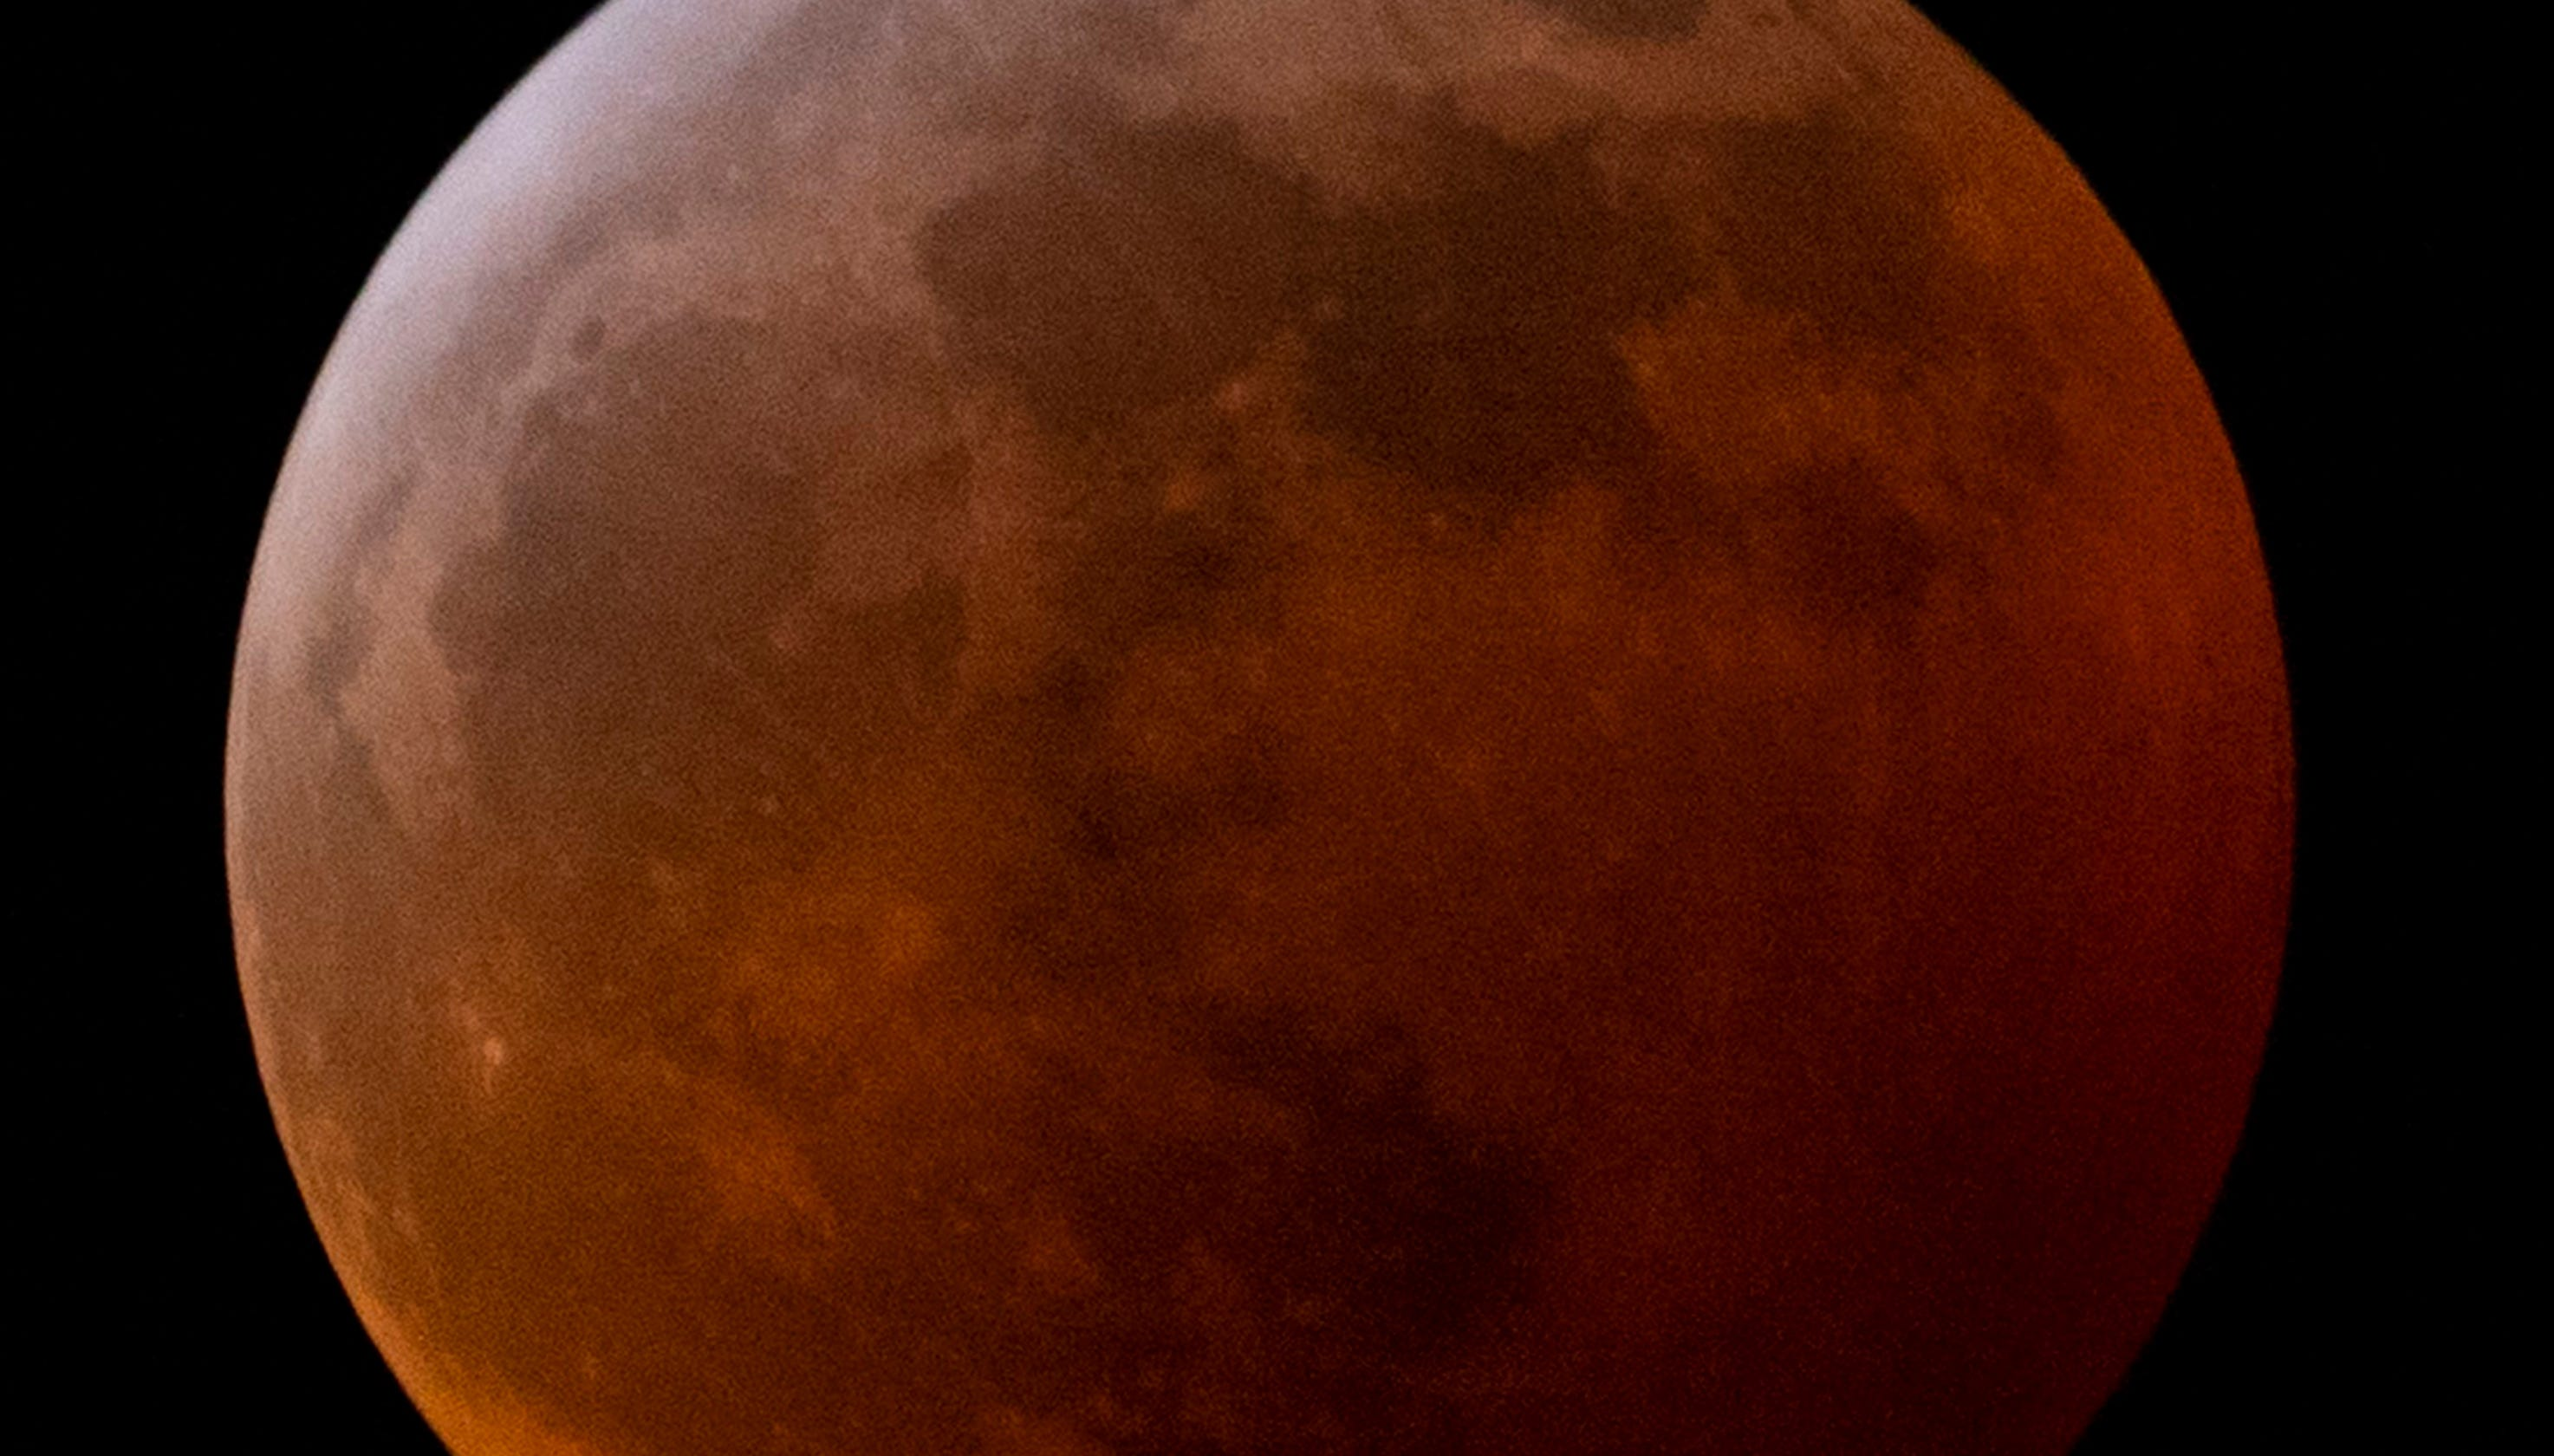 blood moon january 2019 viewing guide - photo #42